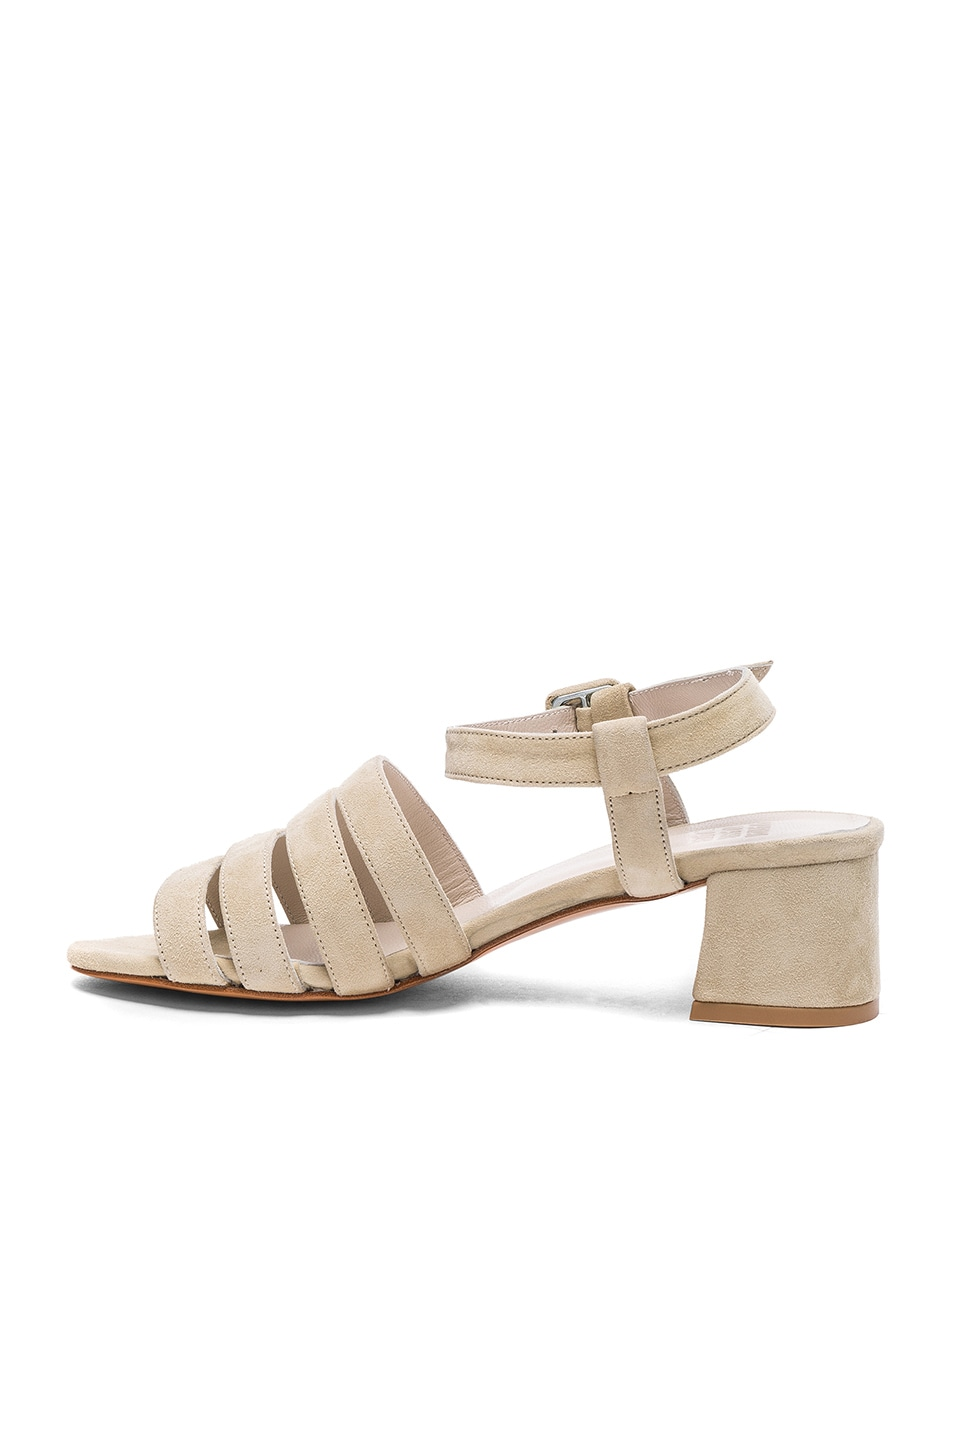 Image 5 of Maryam Nassir Zadeh Suede Palma Low Sandals in Chalk Suede